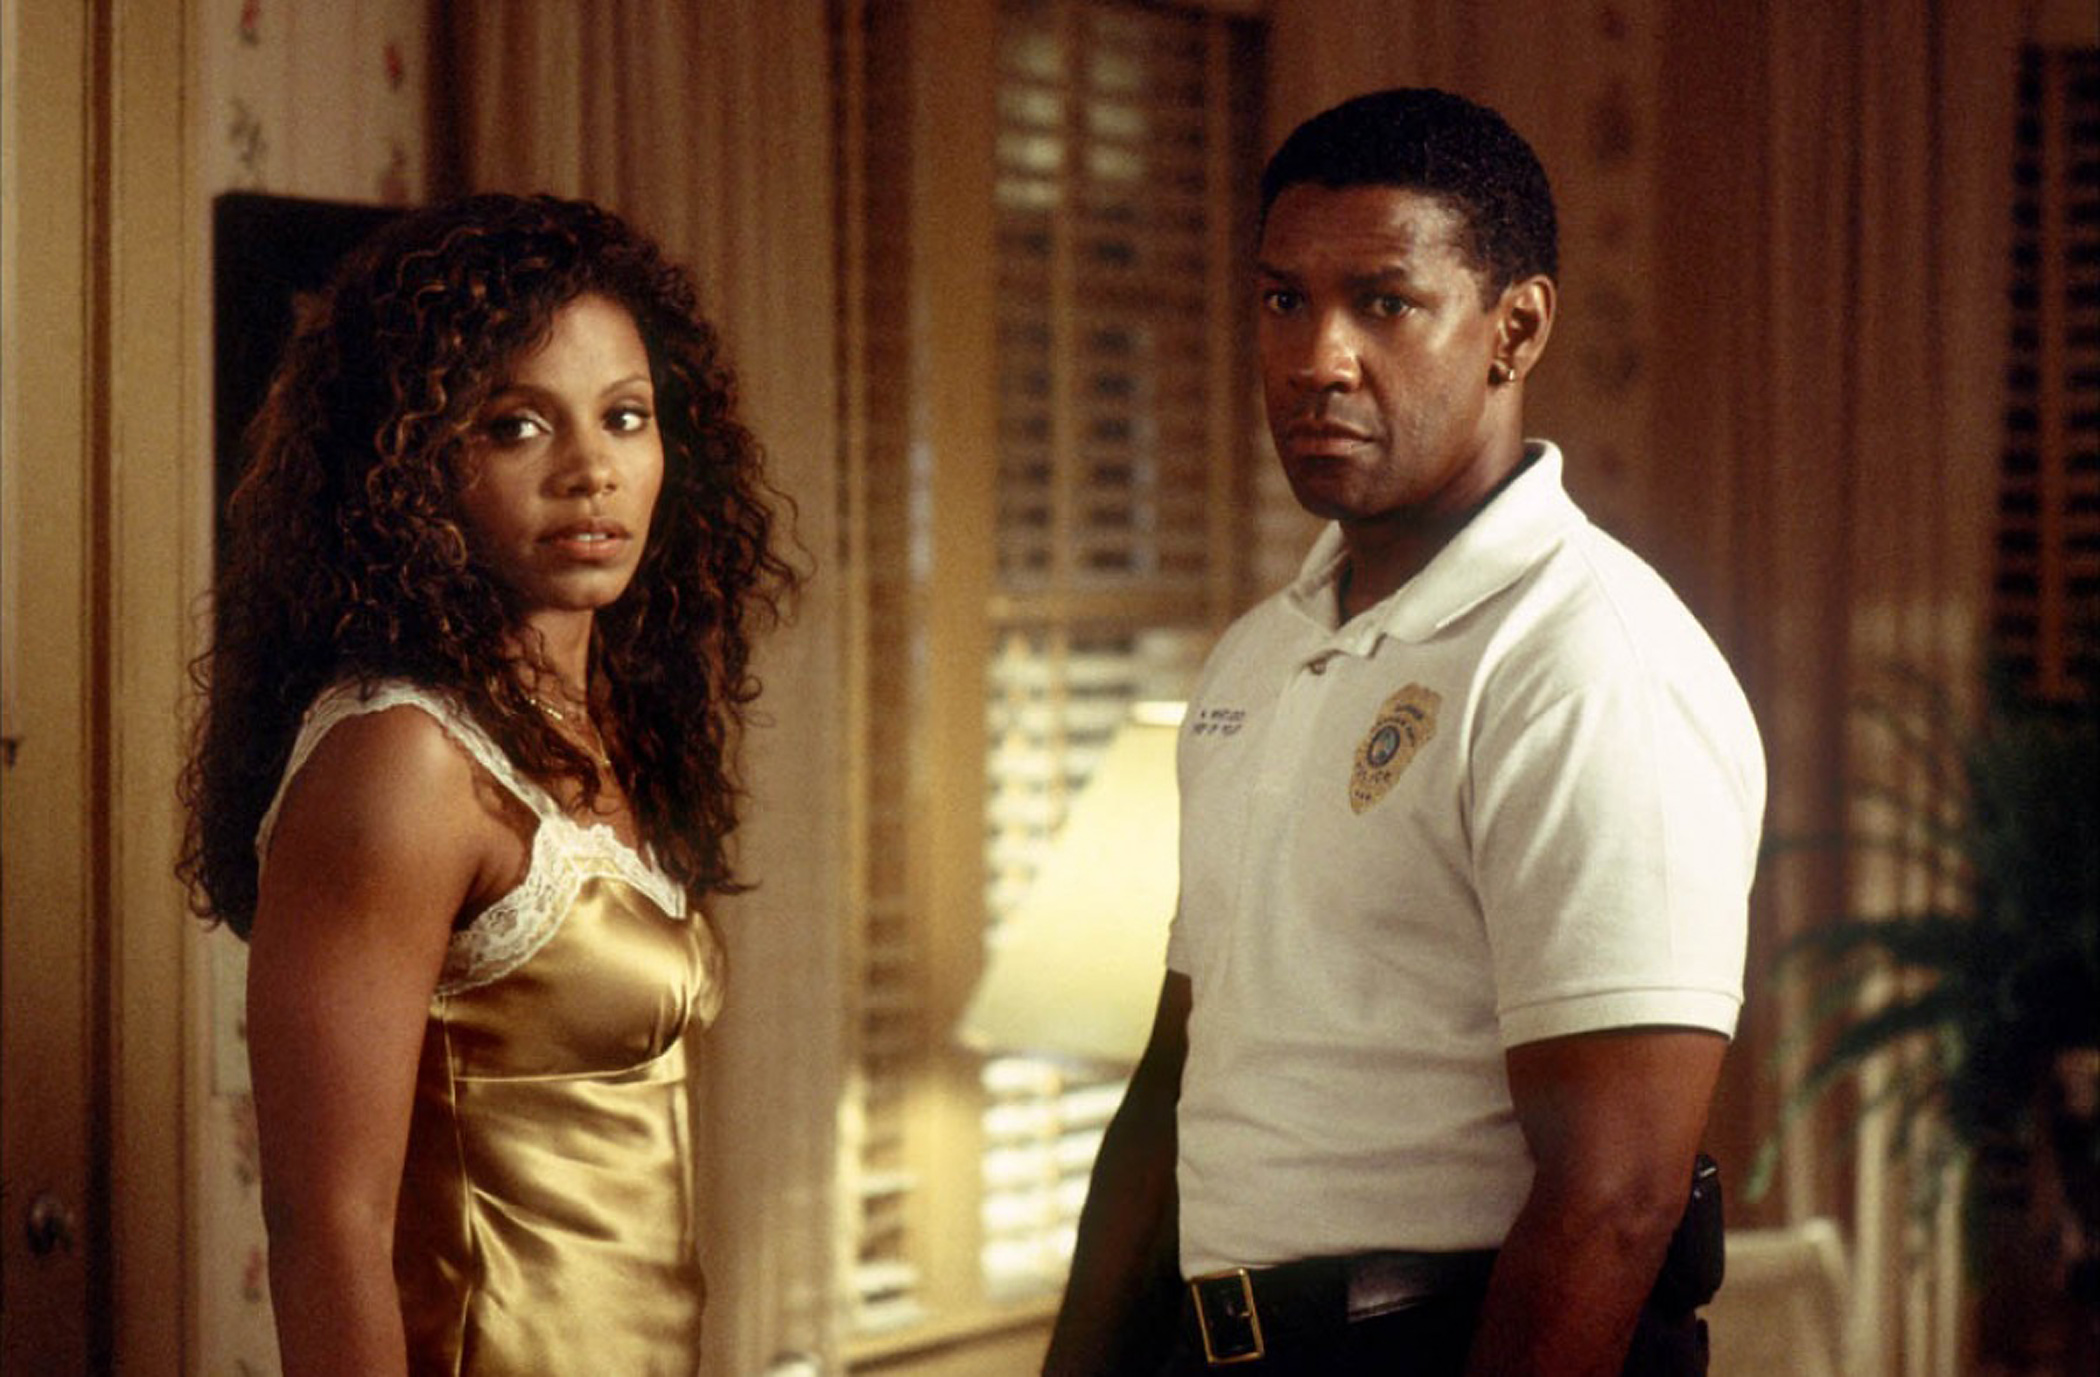 Out of Time (2003) marked Denzel Washington's first 21st century foray into the pure action genre.